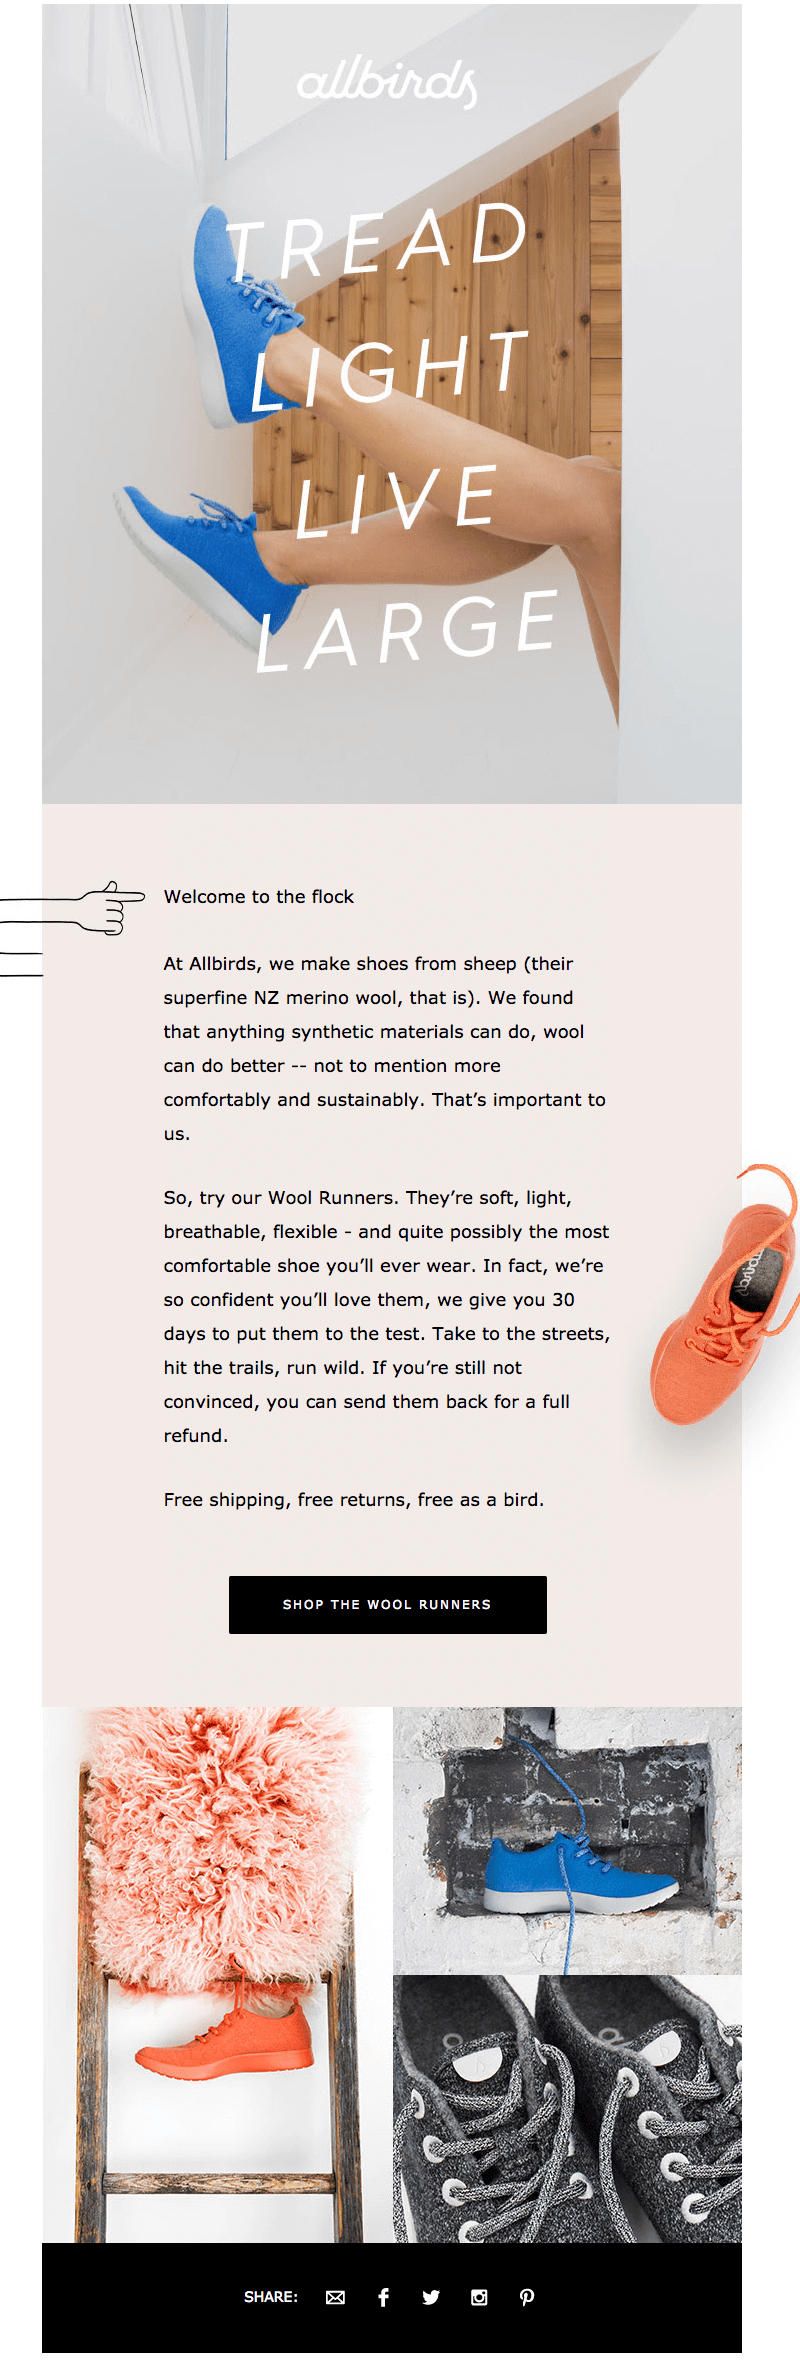 allbirds welcome email design tips